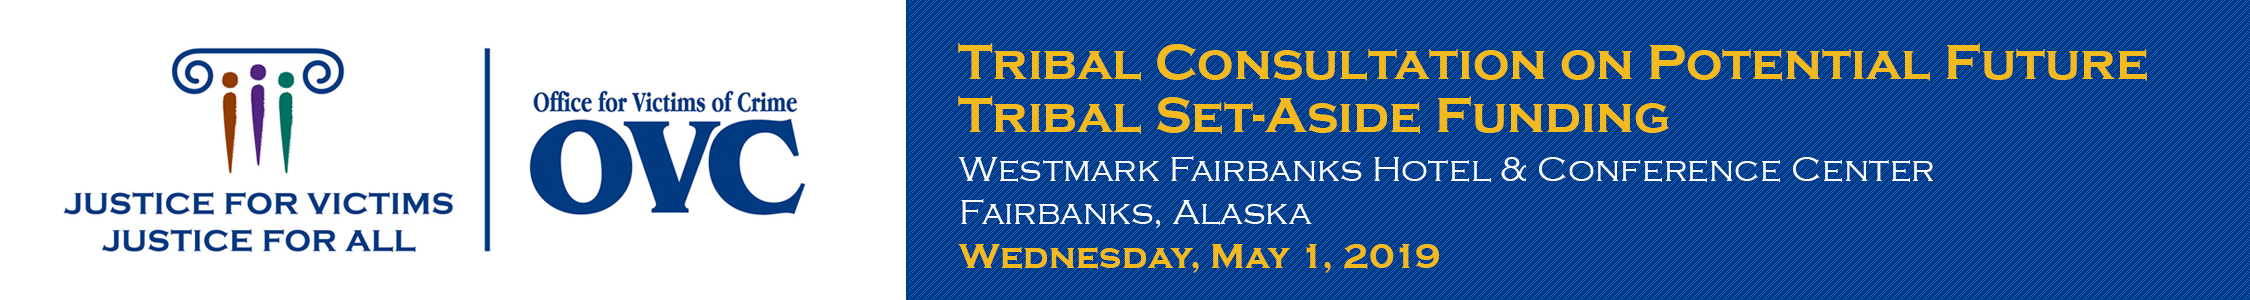 Tribal Consultation on Potential Future Tribal Set-Aside Funding